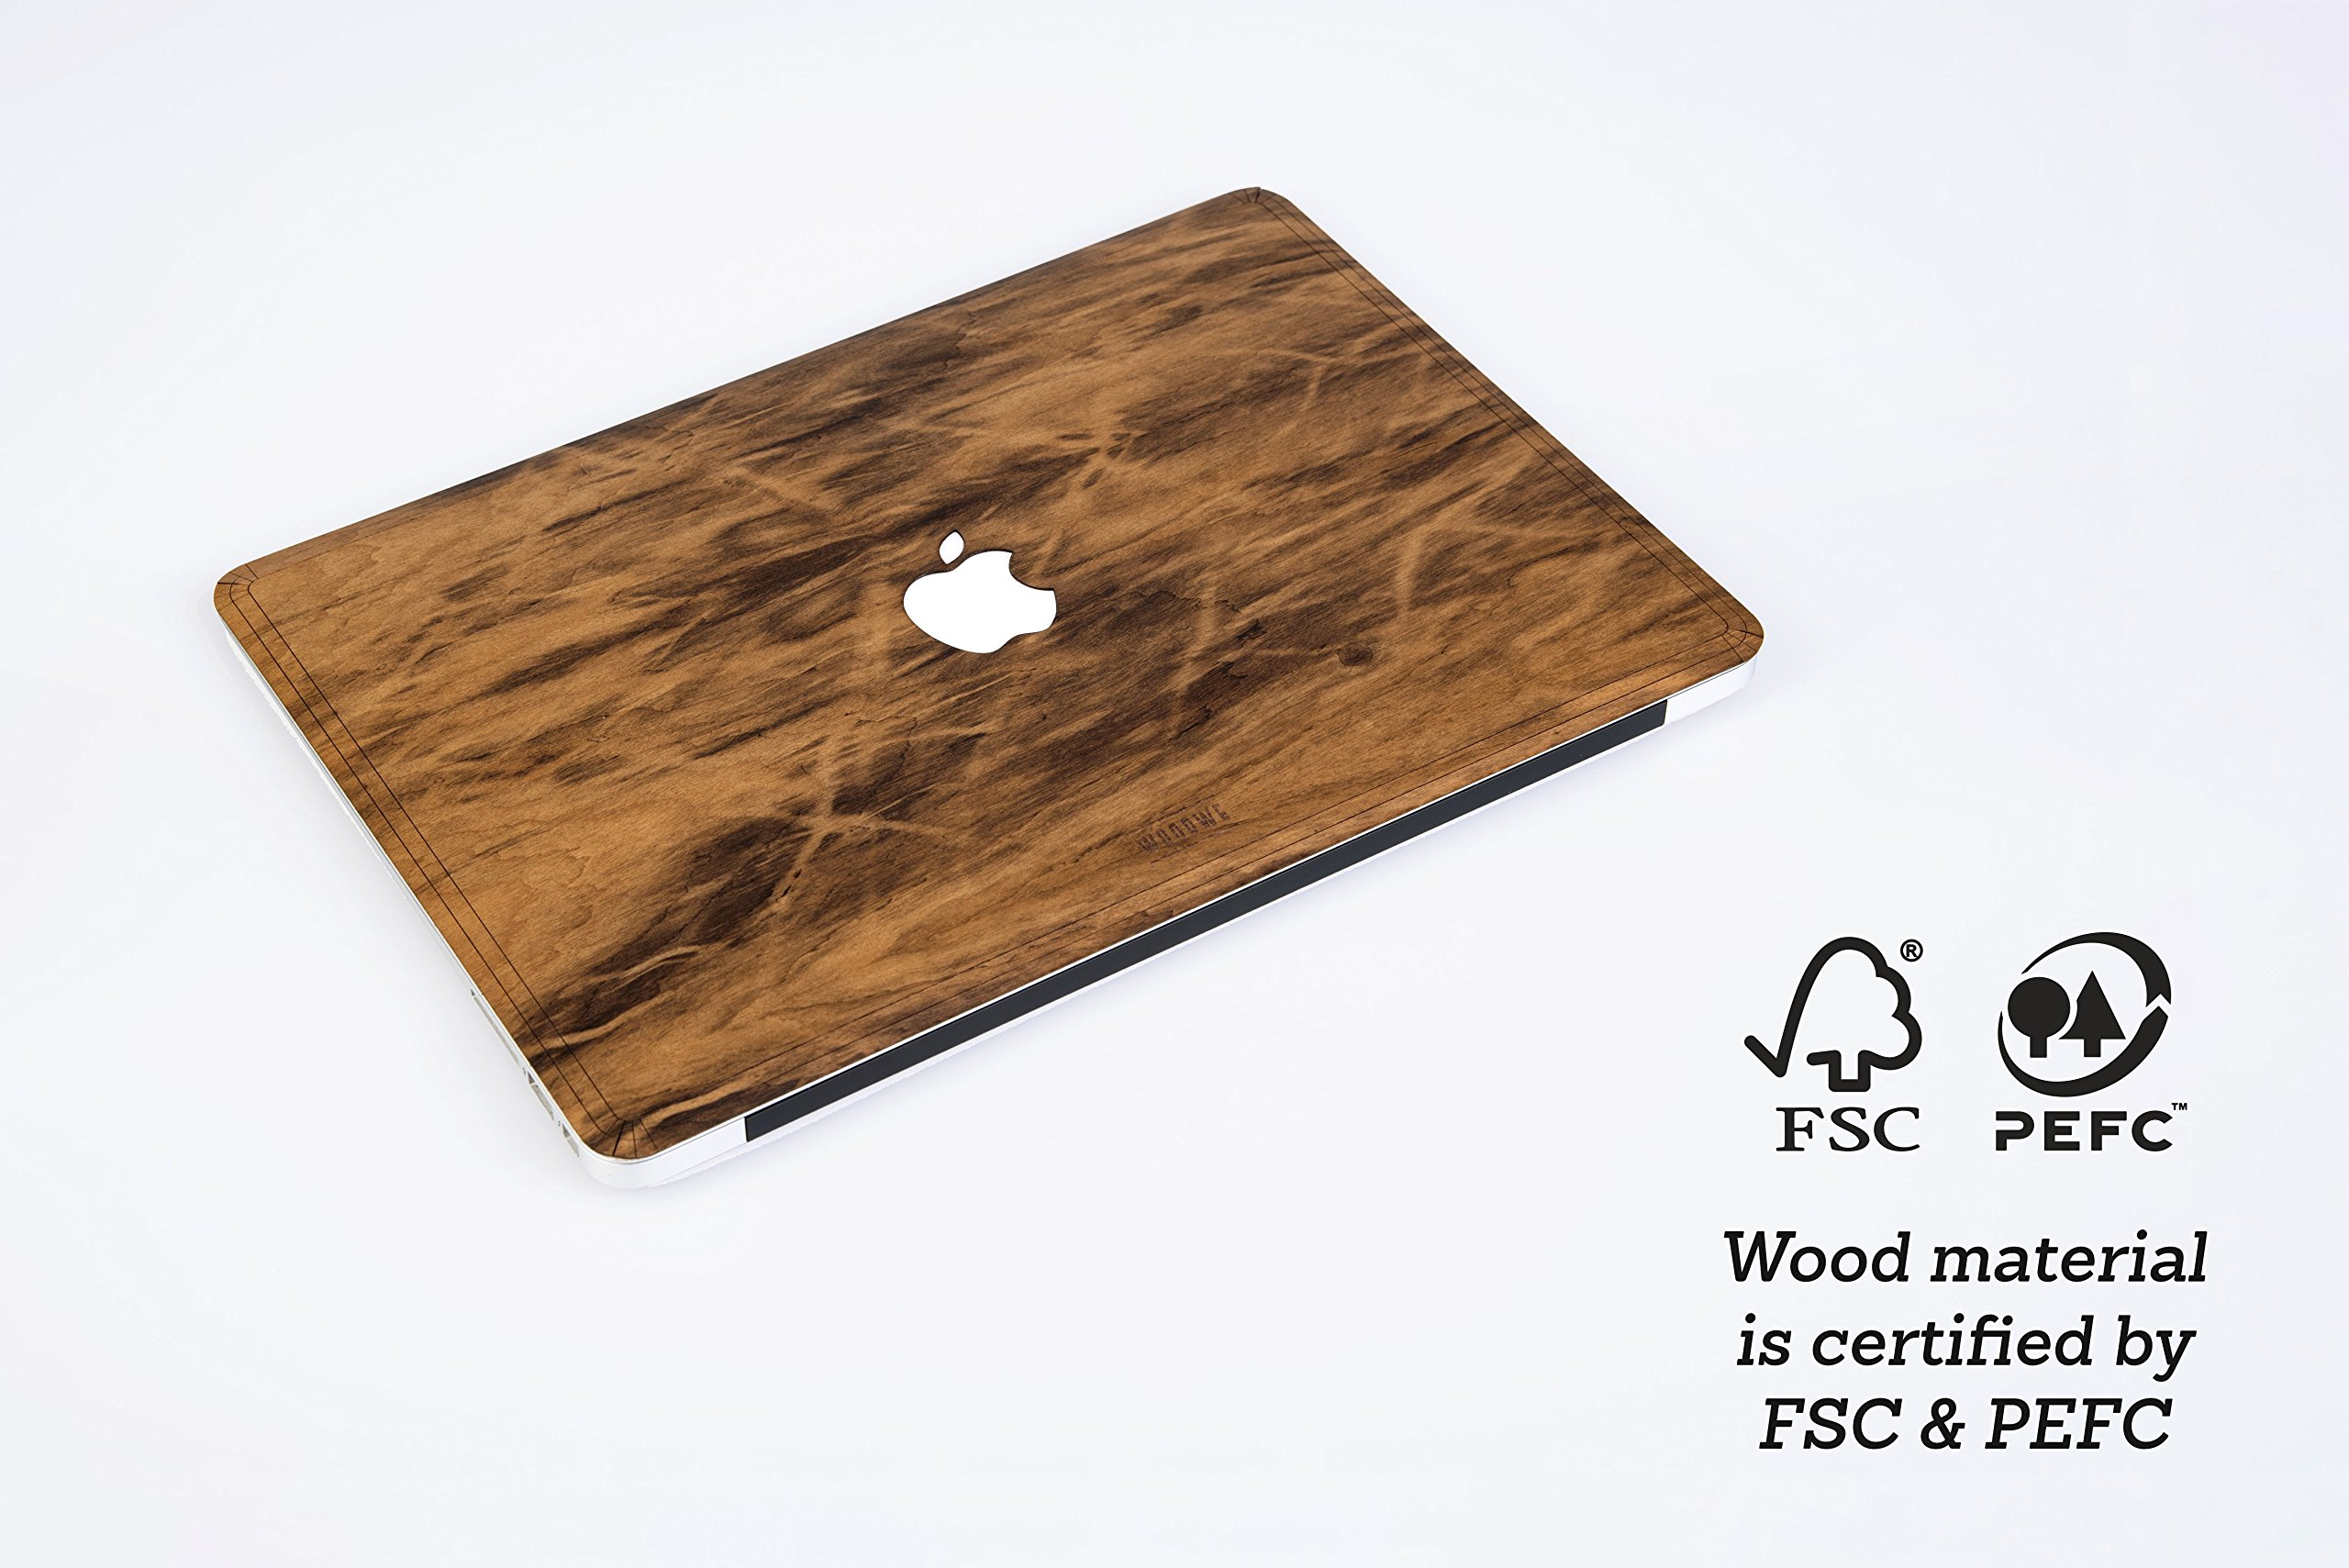 WOODWE Real Wood MacBook Case Cover Skin Sticker Decal for Mac pro 15 inch Retina Display | Model: A1398; Mid 2012 – Mid 2015 | Genuine & Natural IMBUIA Wood | TOP&Bottom Cover by WOODWE (Image #3)